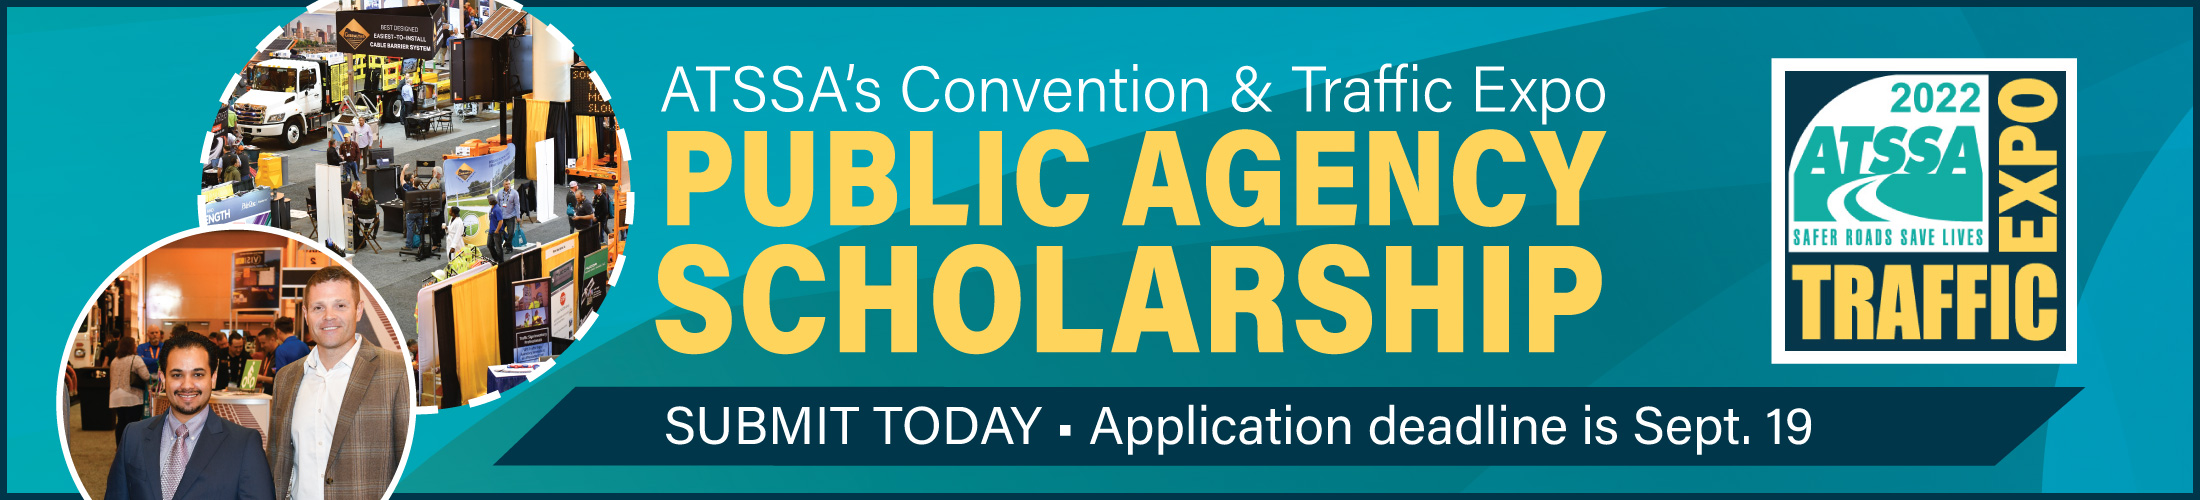 Public agents -- apply today for a scholarship to attend Traffic Expo 2022.